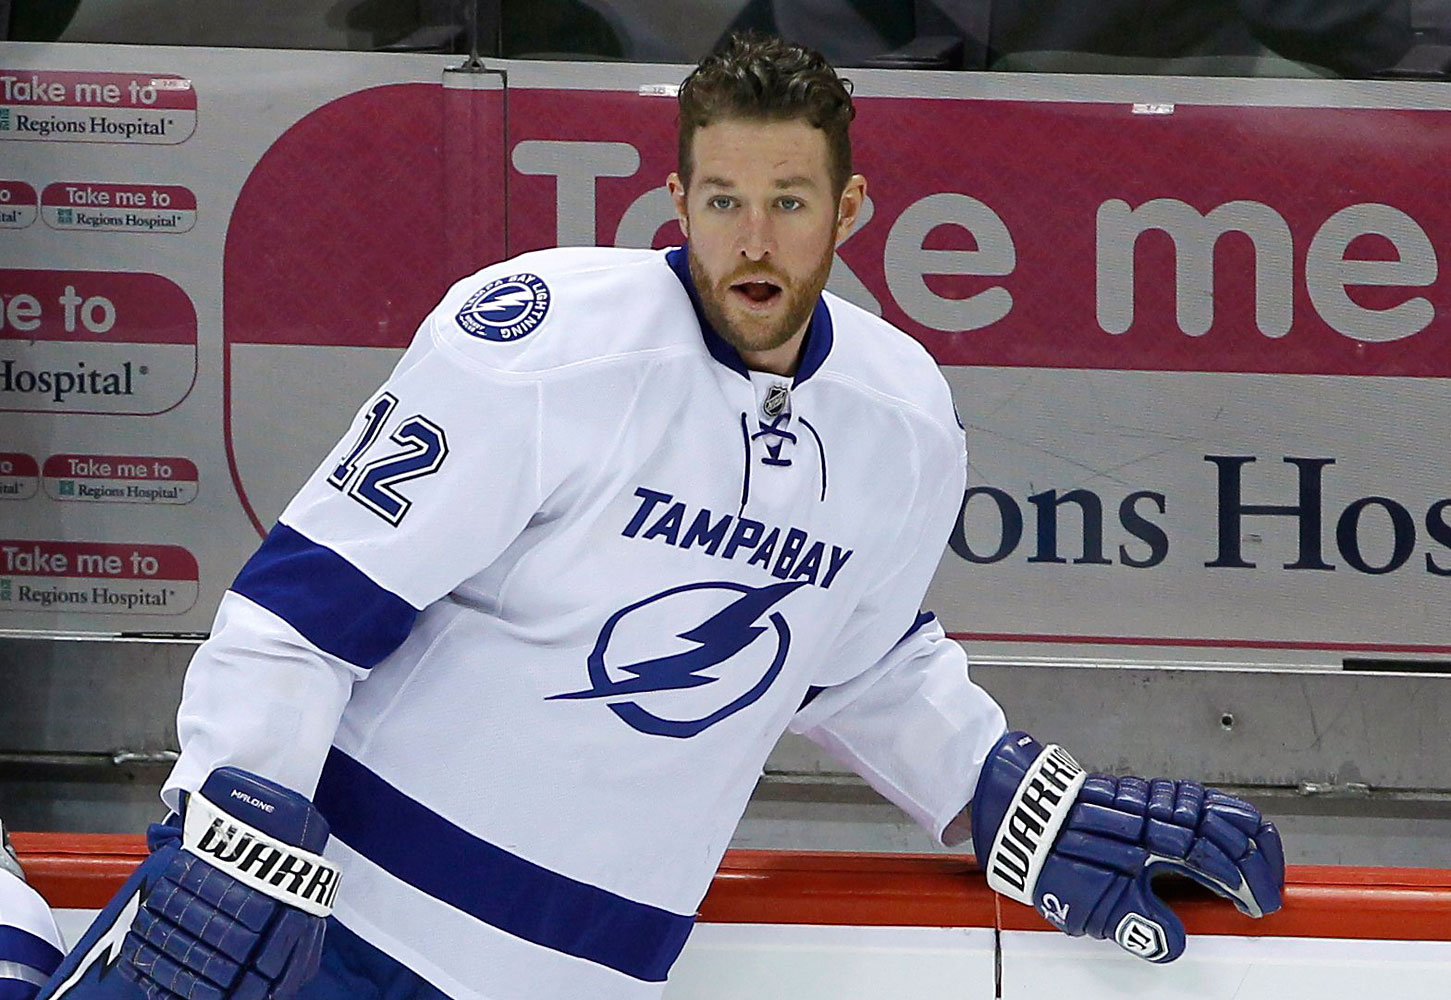 Tampa Bay Lightning left wing Ryan Malone stretches before an NHL hockey game against the Minnesota Wild in St. Paul, Minn.  Malone was charged Saturday with DUI and possession of cocaine after a traffic stop, police said.